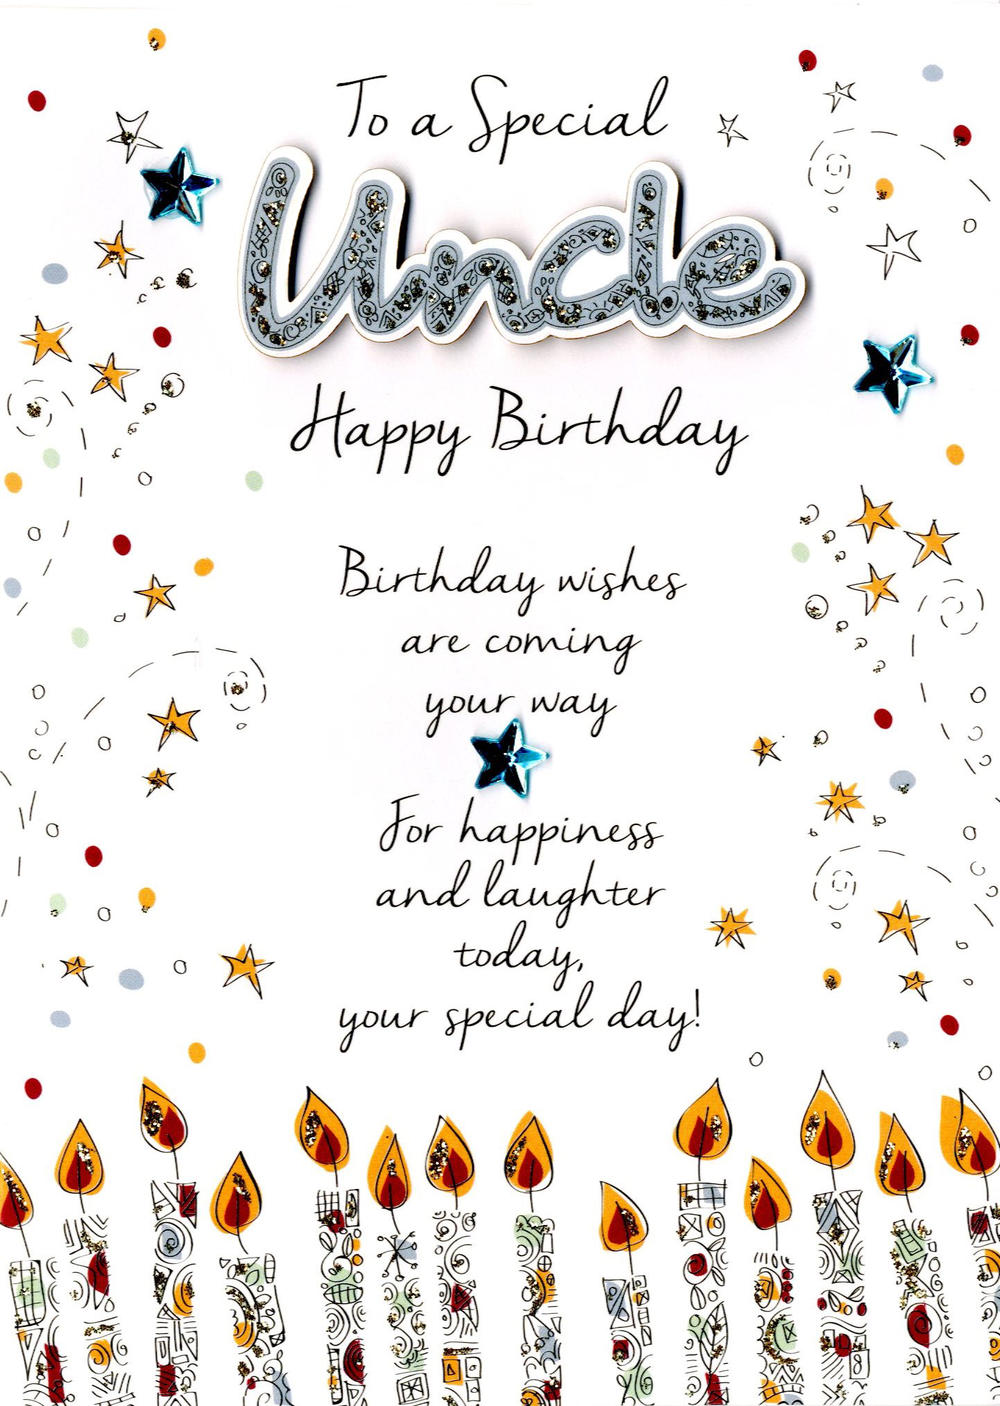 special uncle birthday greeting card  cards  love kates, Birthday card